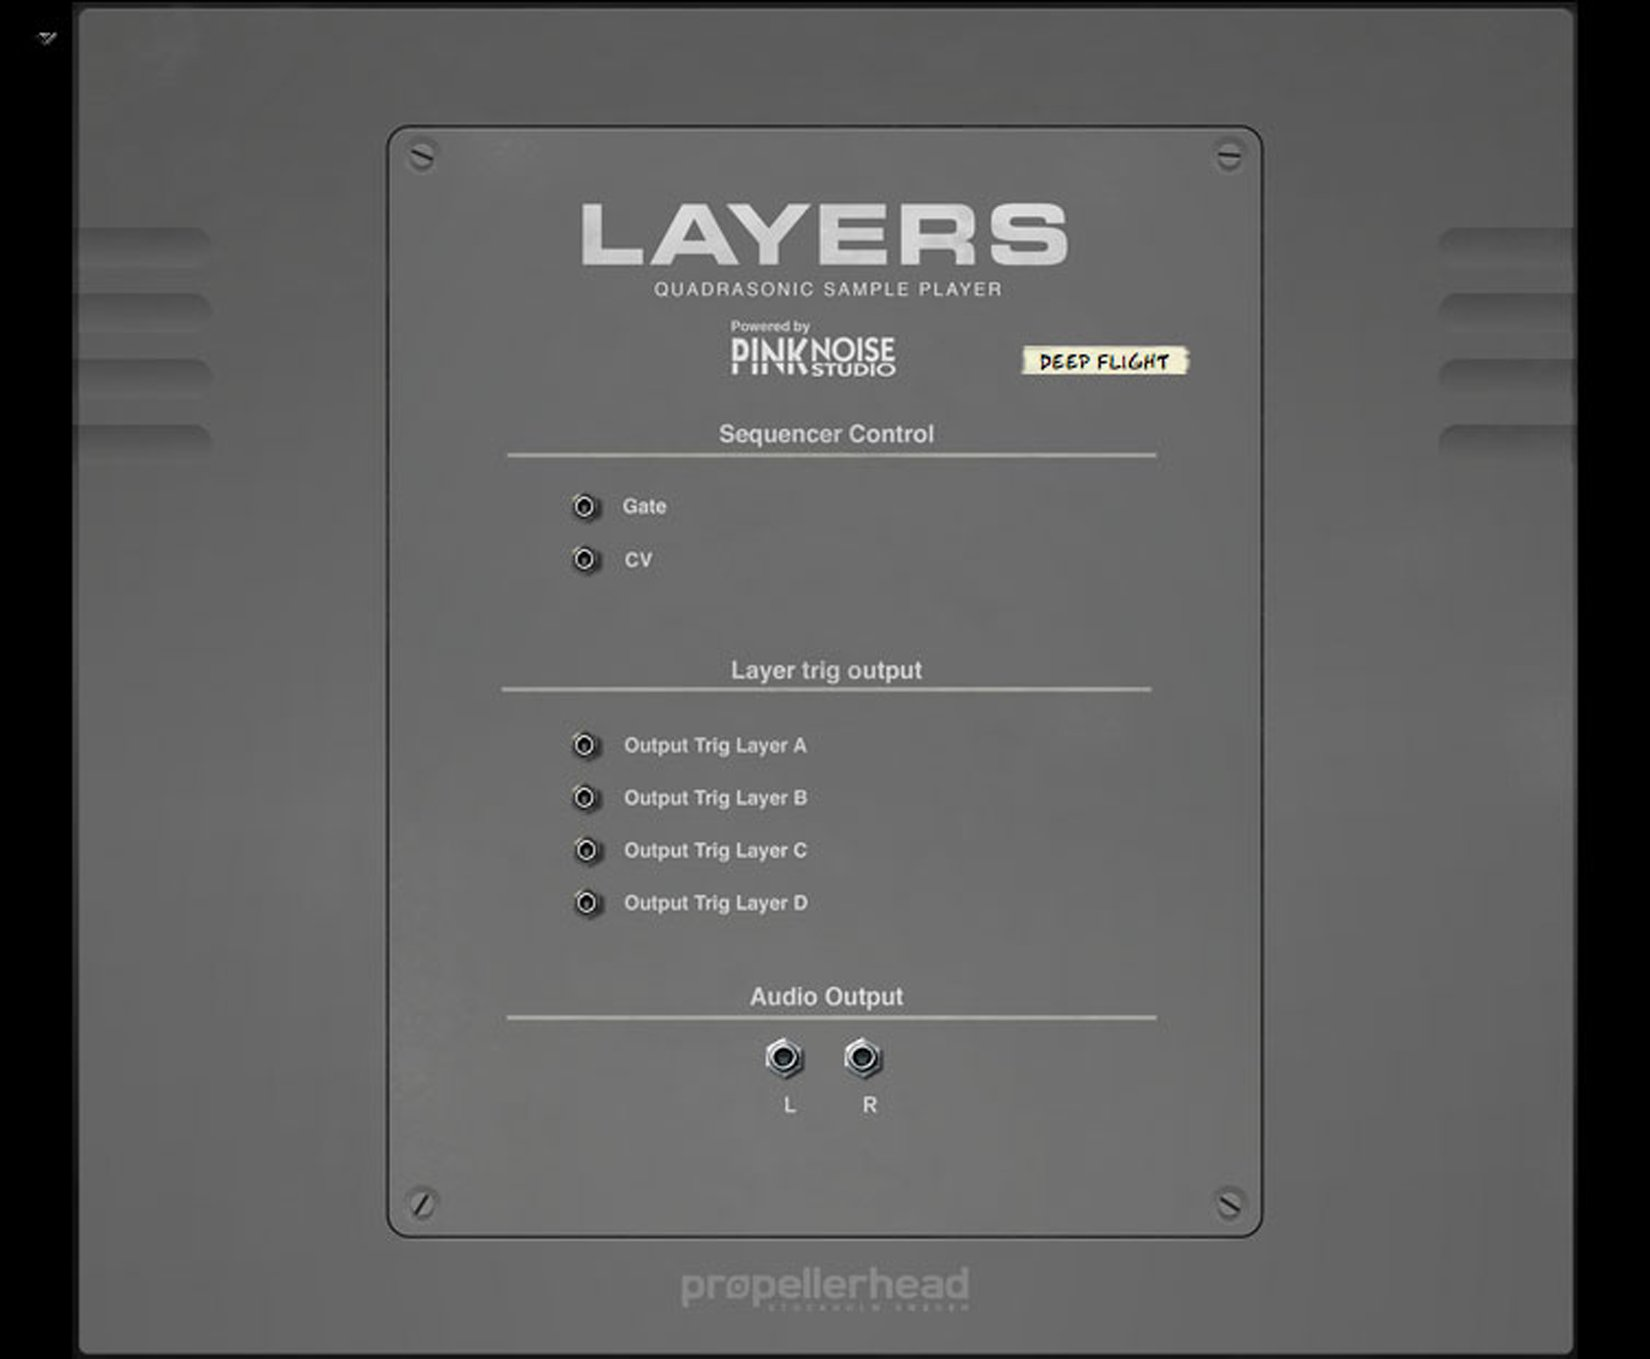 Layers RE back